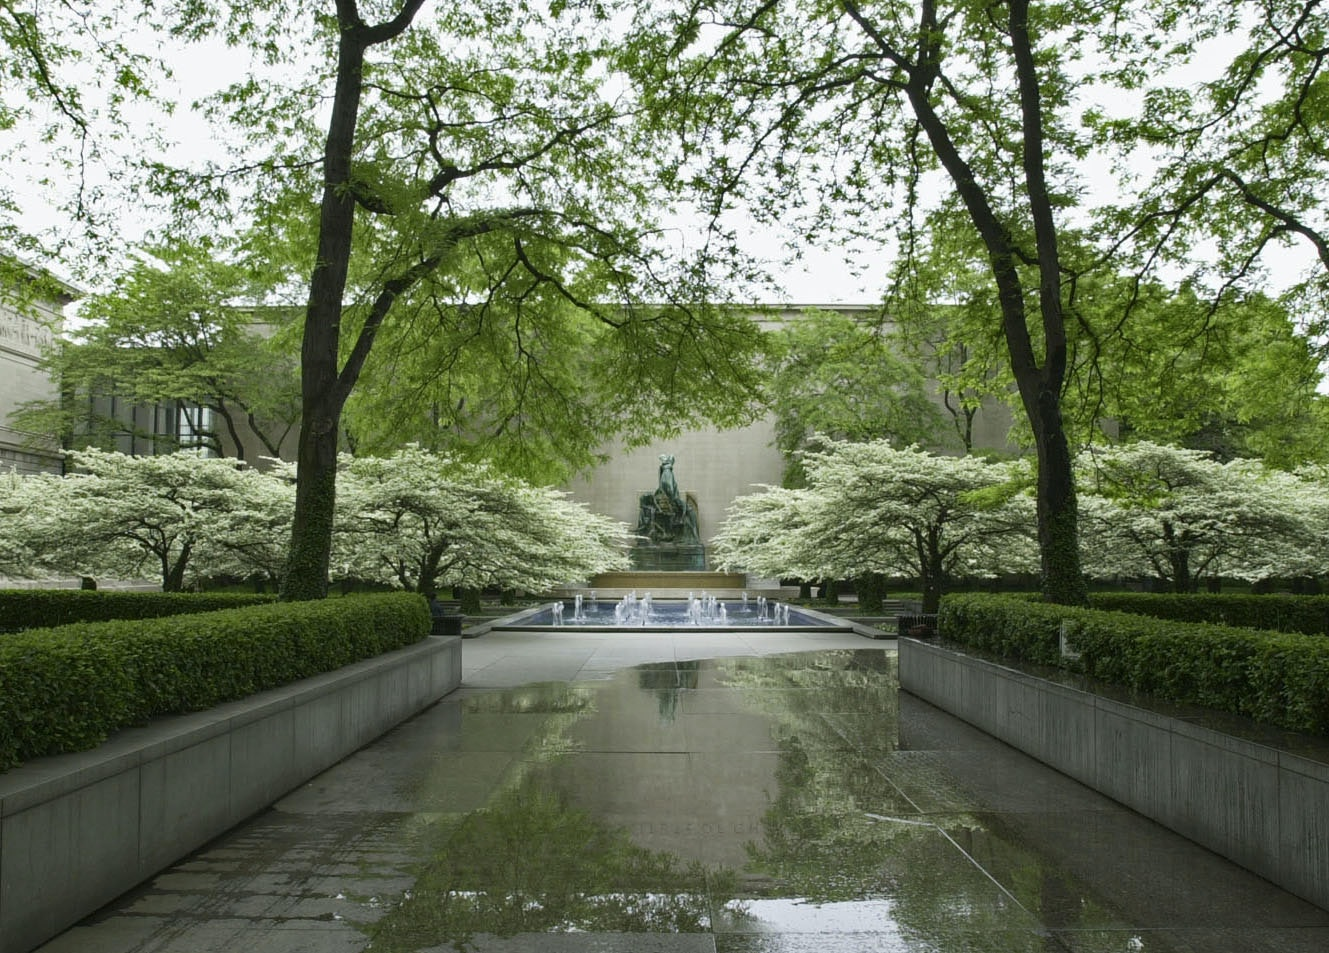 The South Garden as it appears today